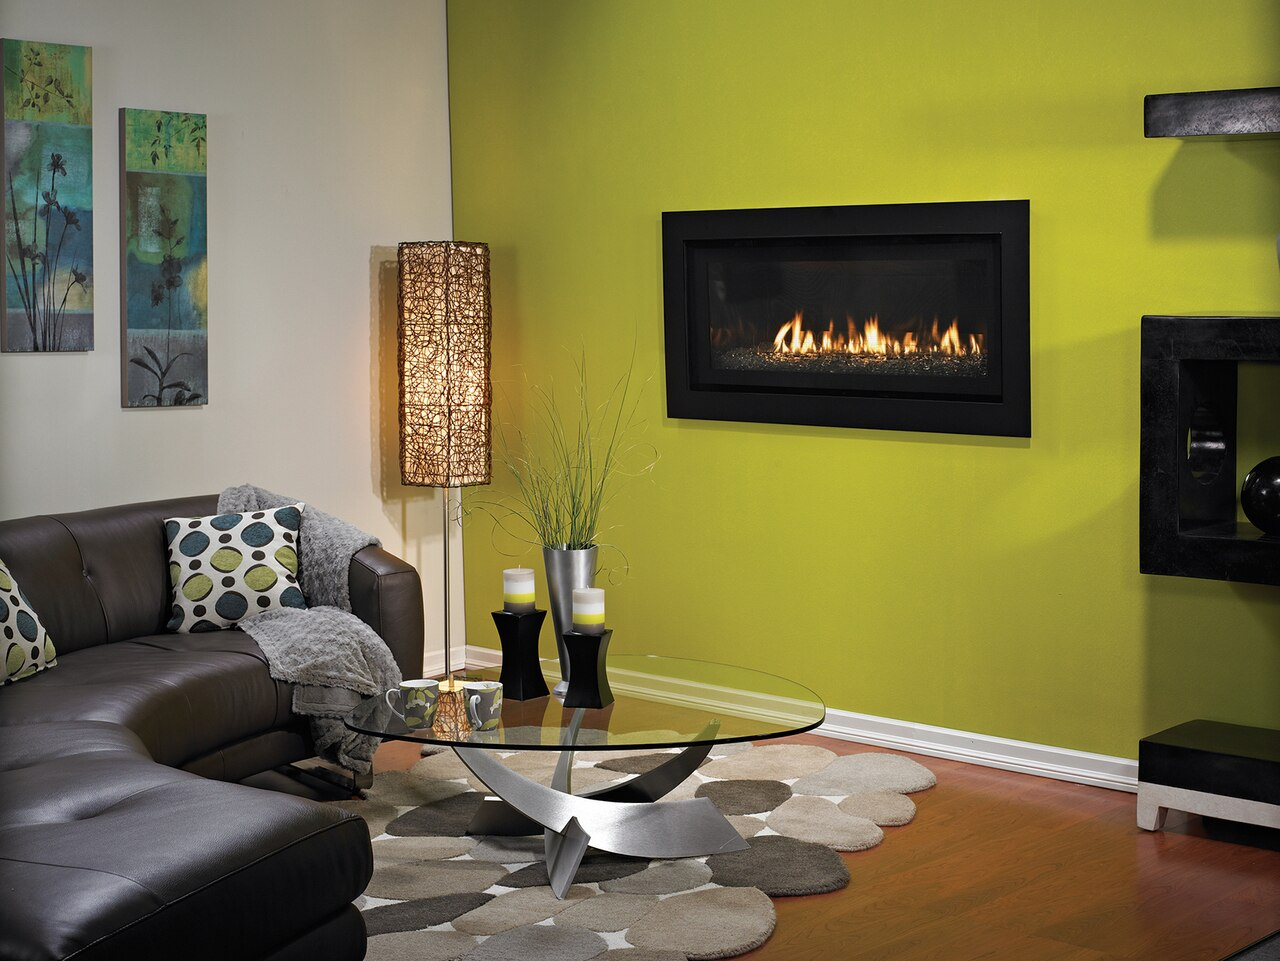 Empire DVLL41FP92P Boulevard Contemporary Direct Vent Fireplace